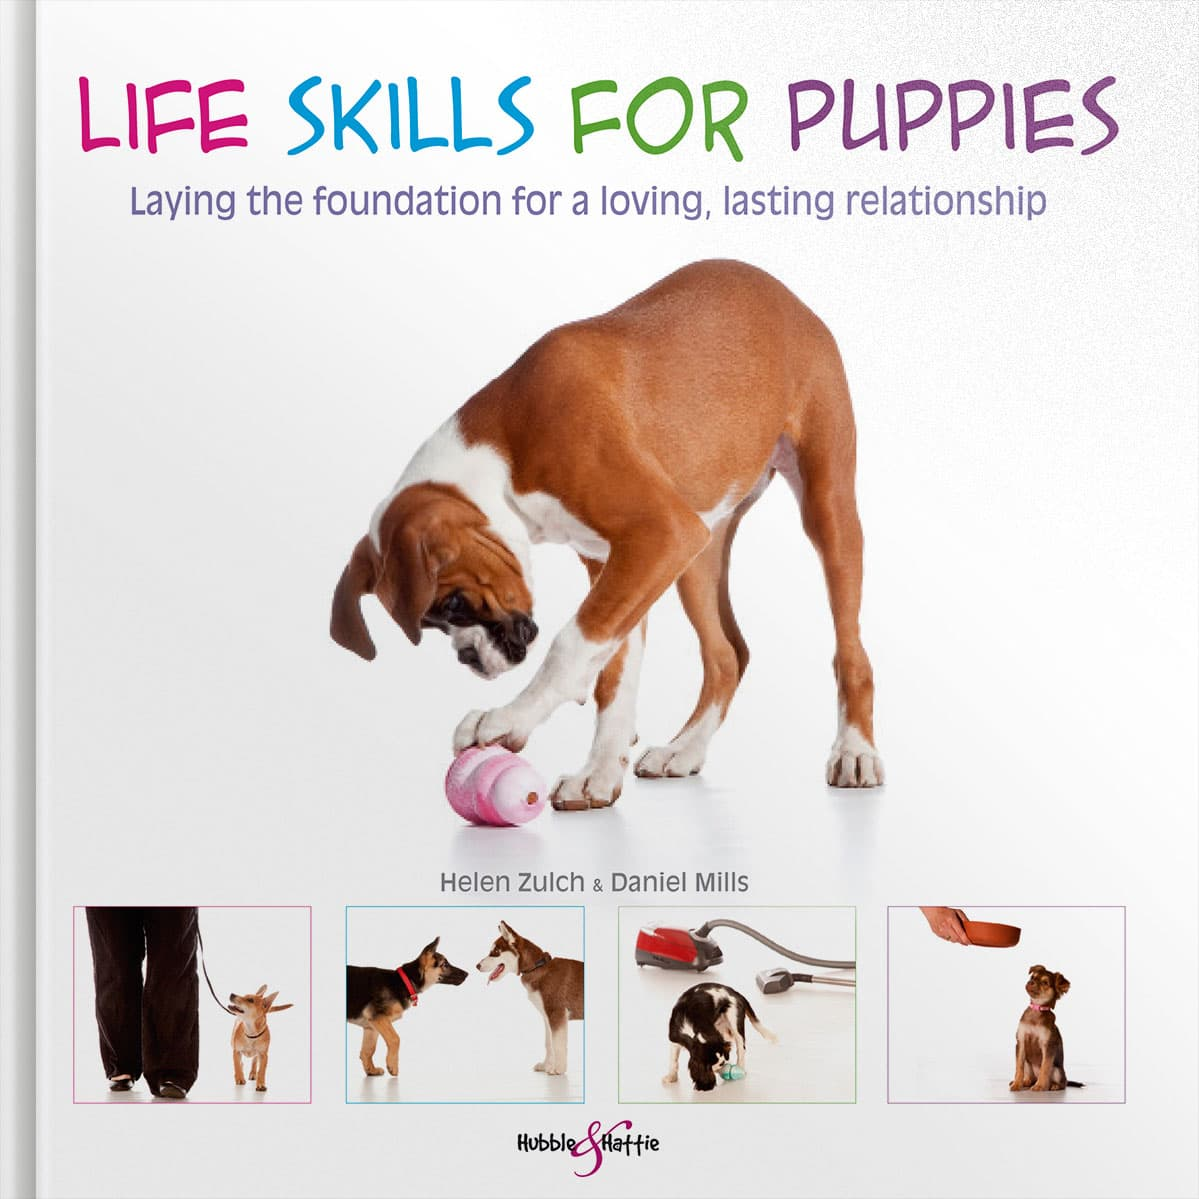 Life skills for puppiesLaying the foundation for a loving, lasting relationship